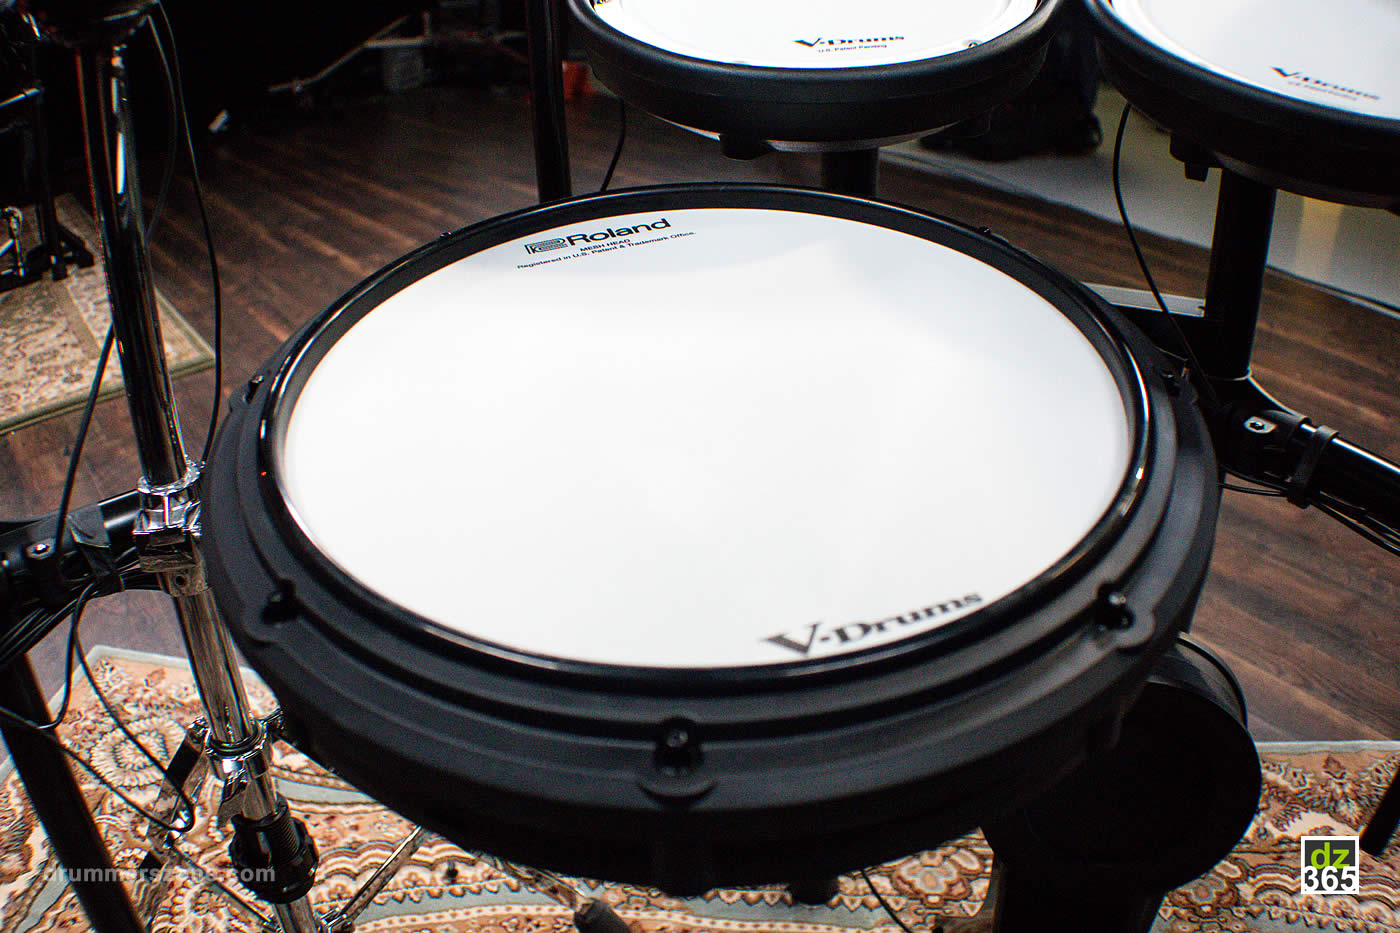 Roland TD-17 - PDX-12 snare pad